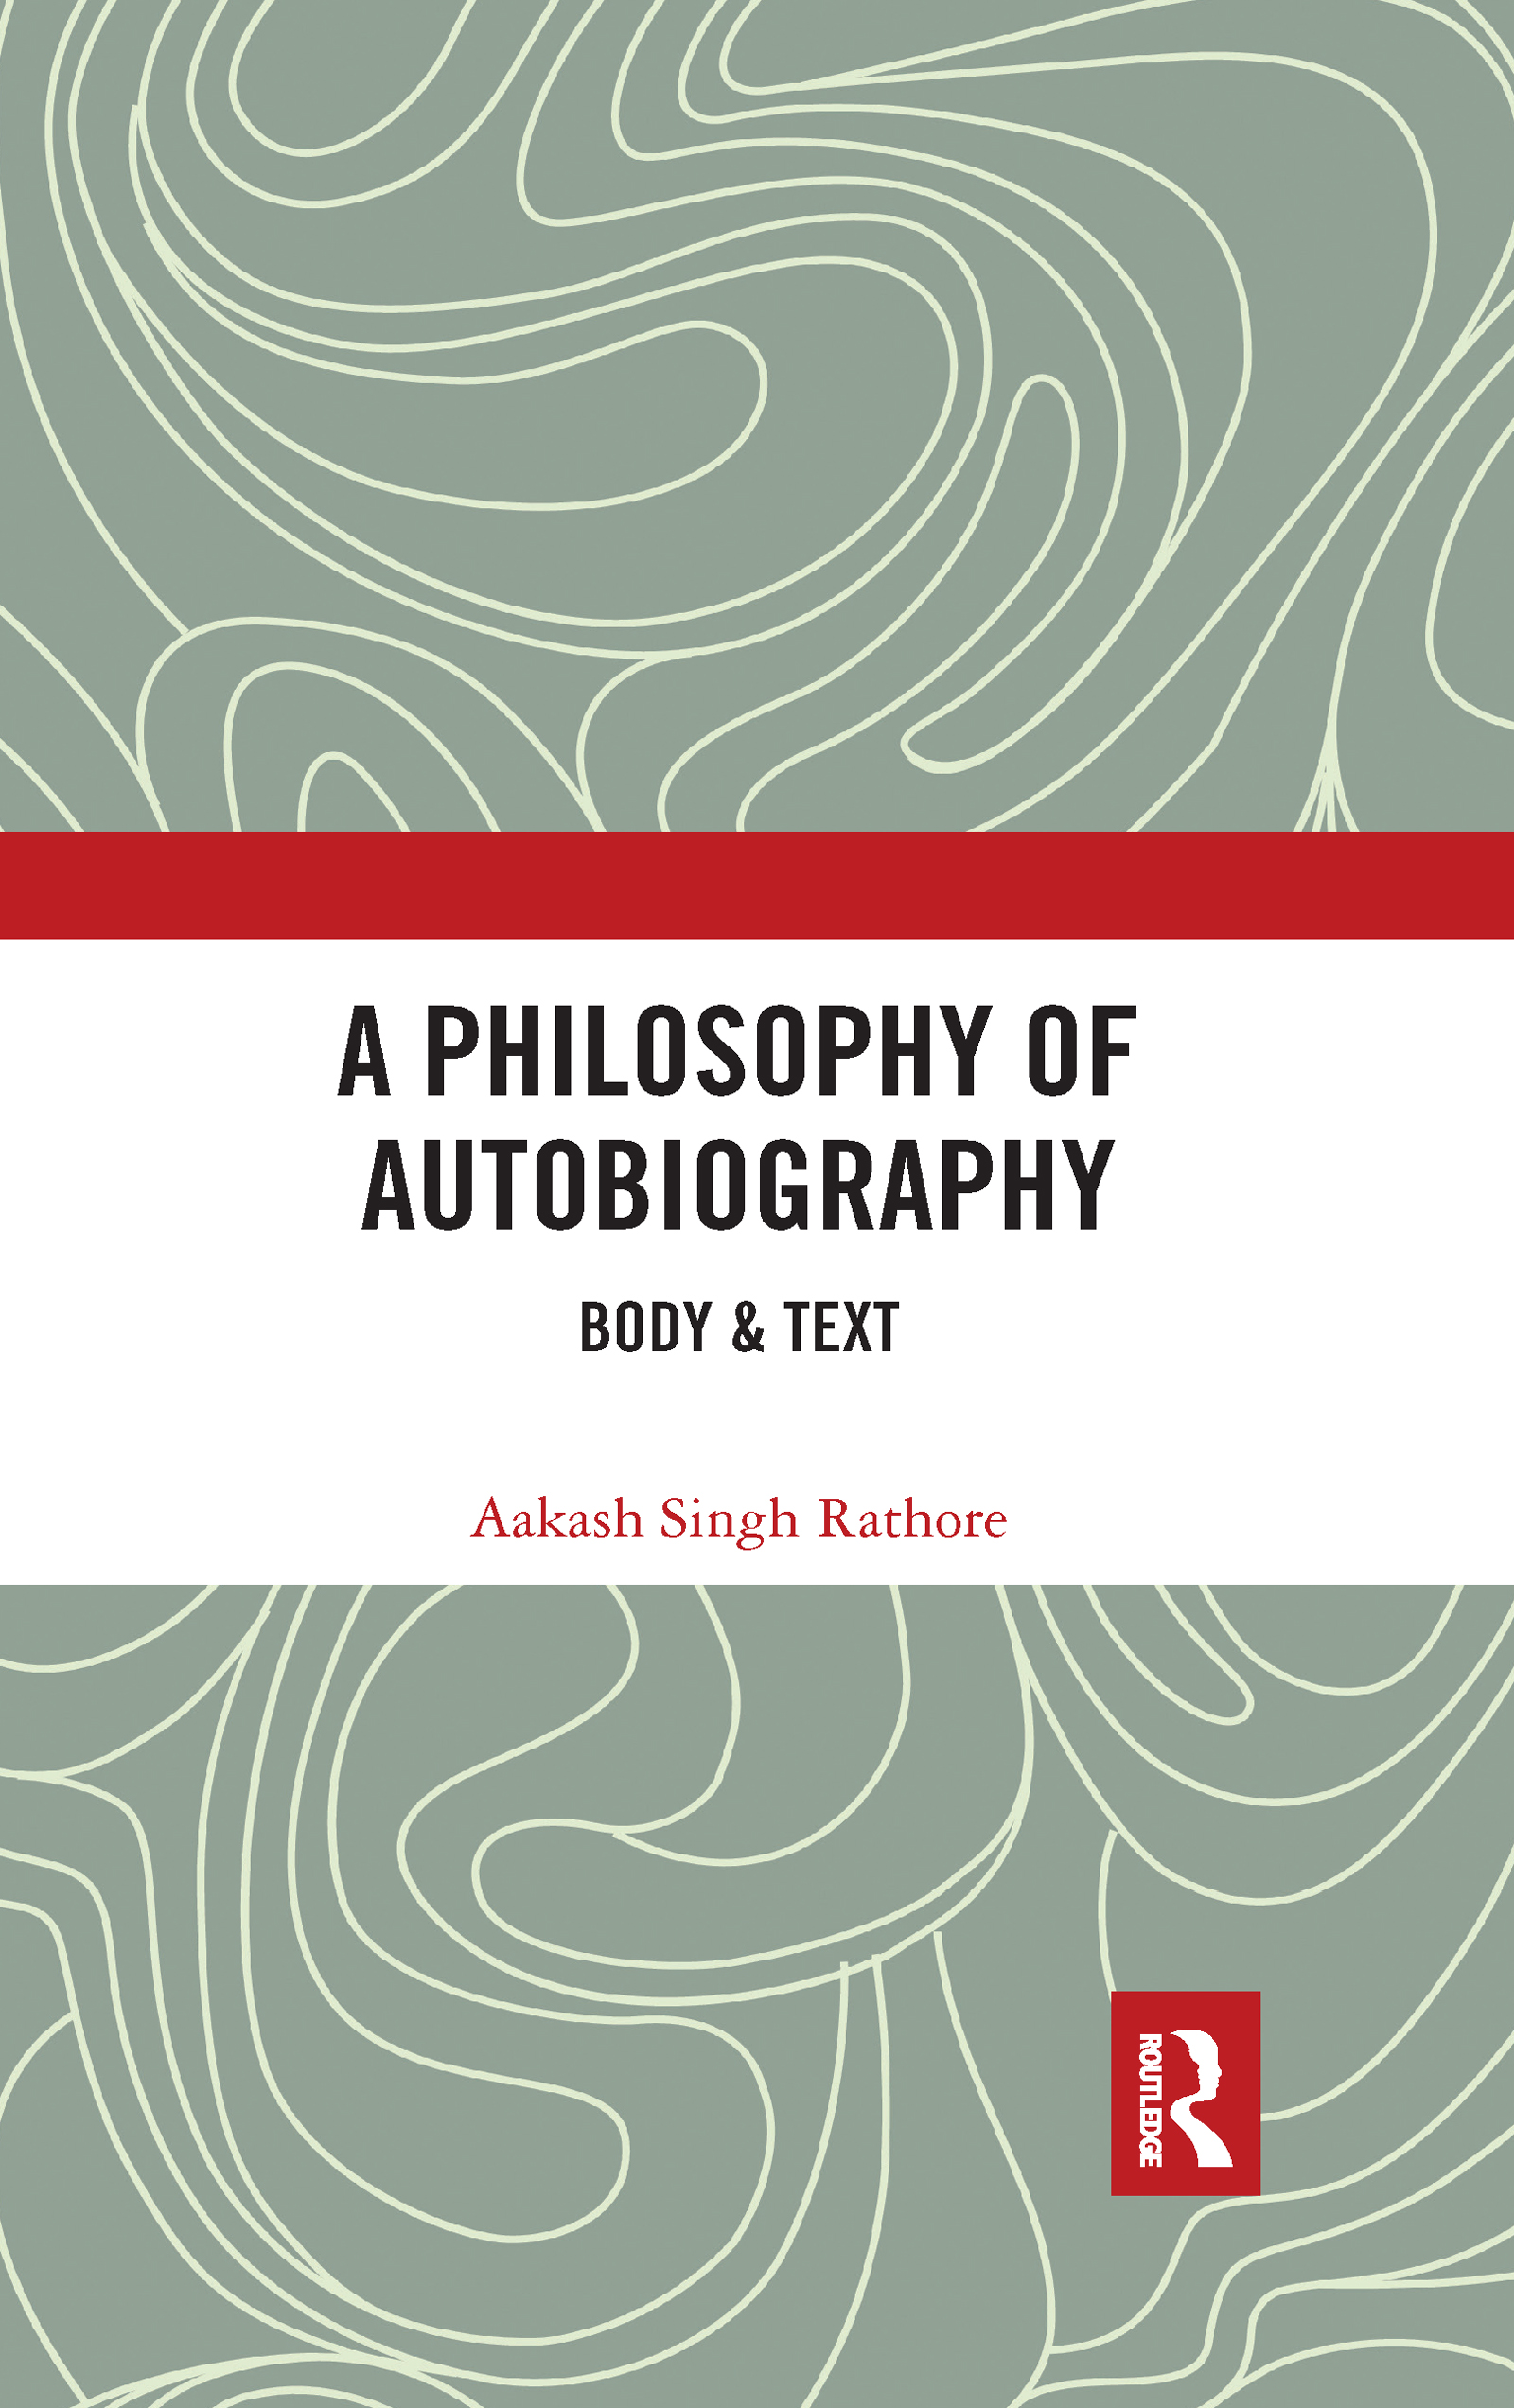 A Philosophy of Autobiography